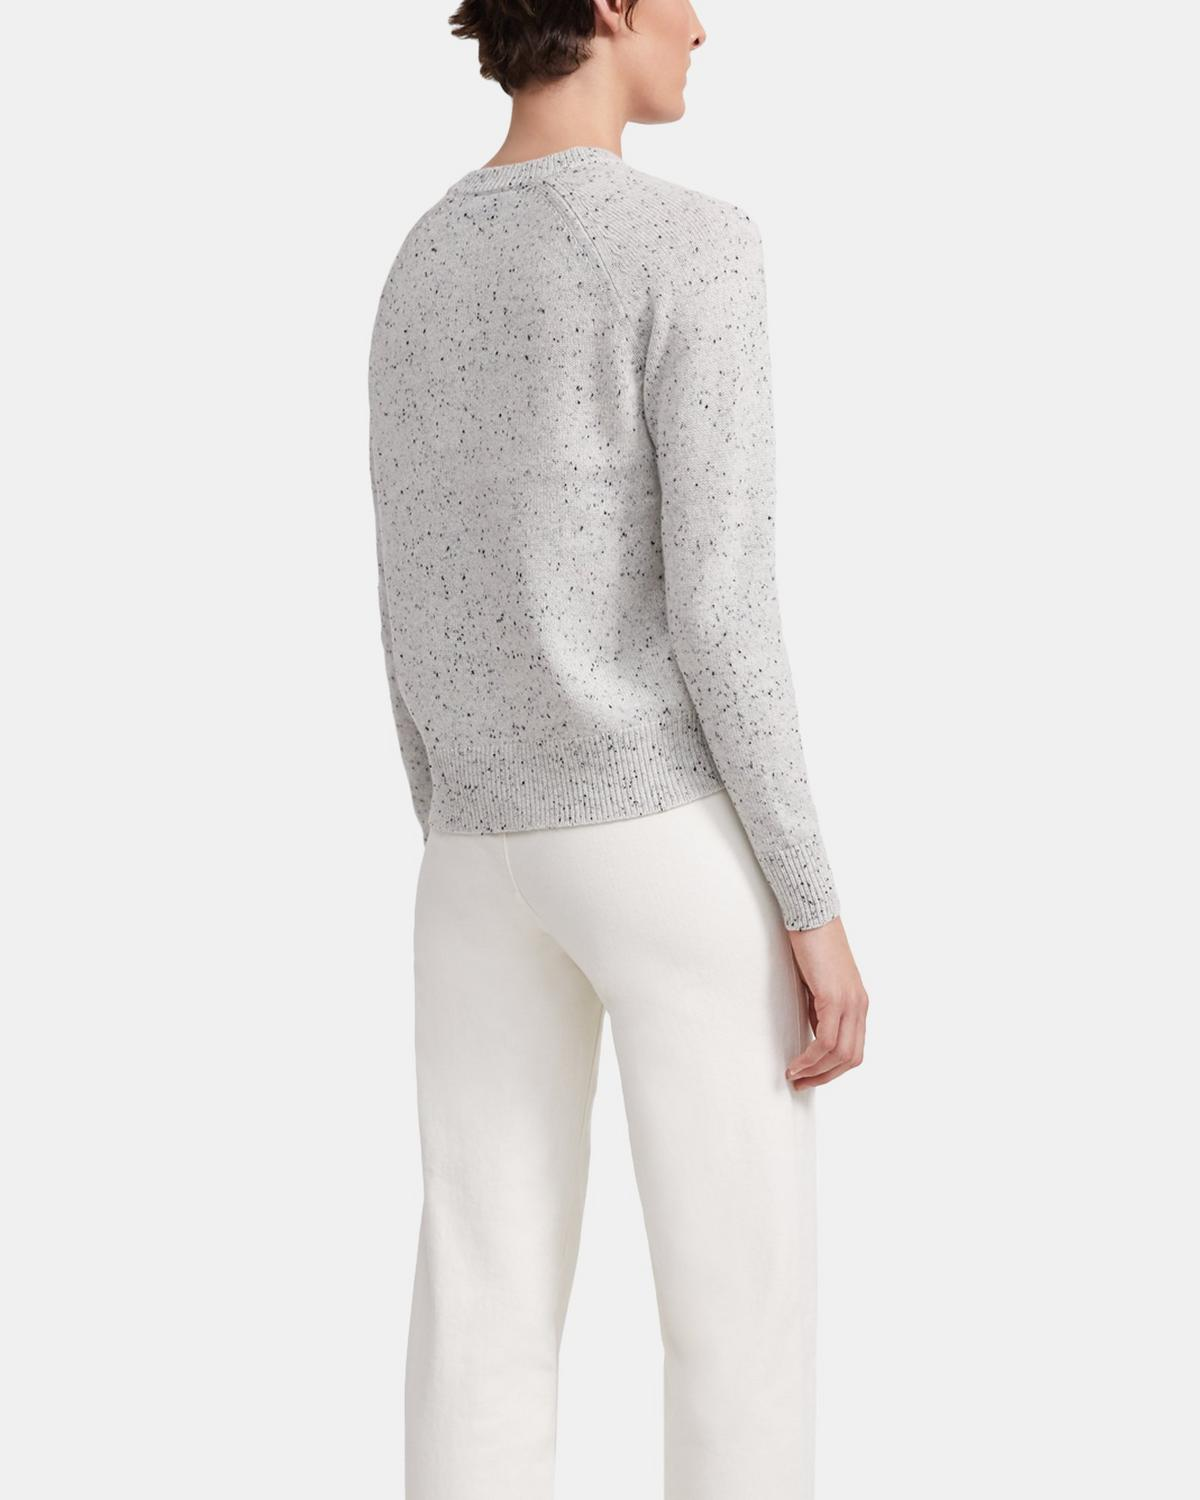 Donegal Cashmere Easy Crewneck Sweater